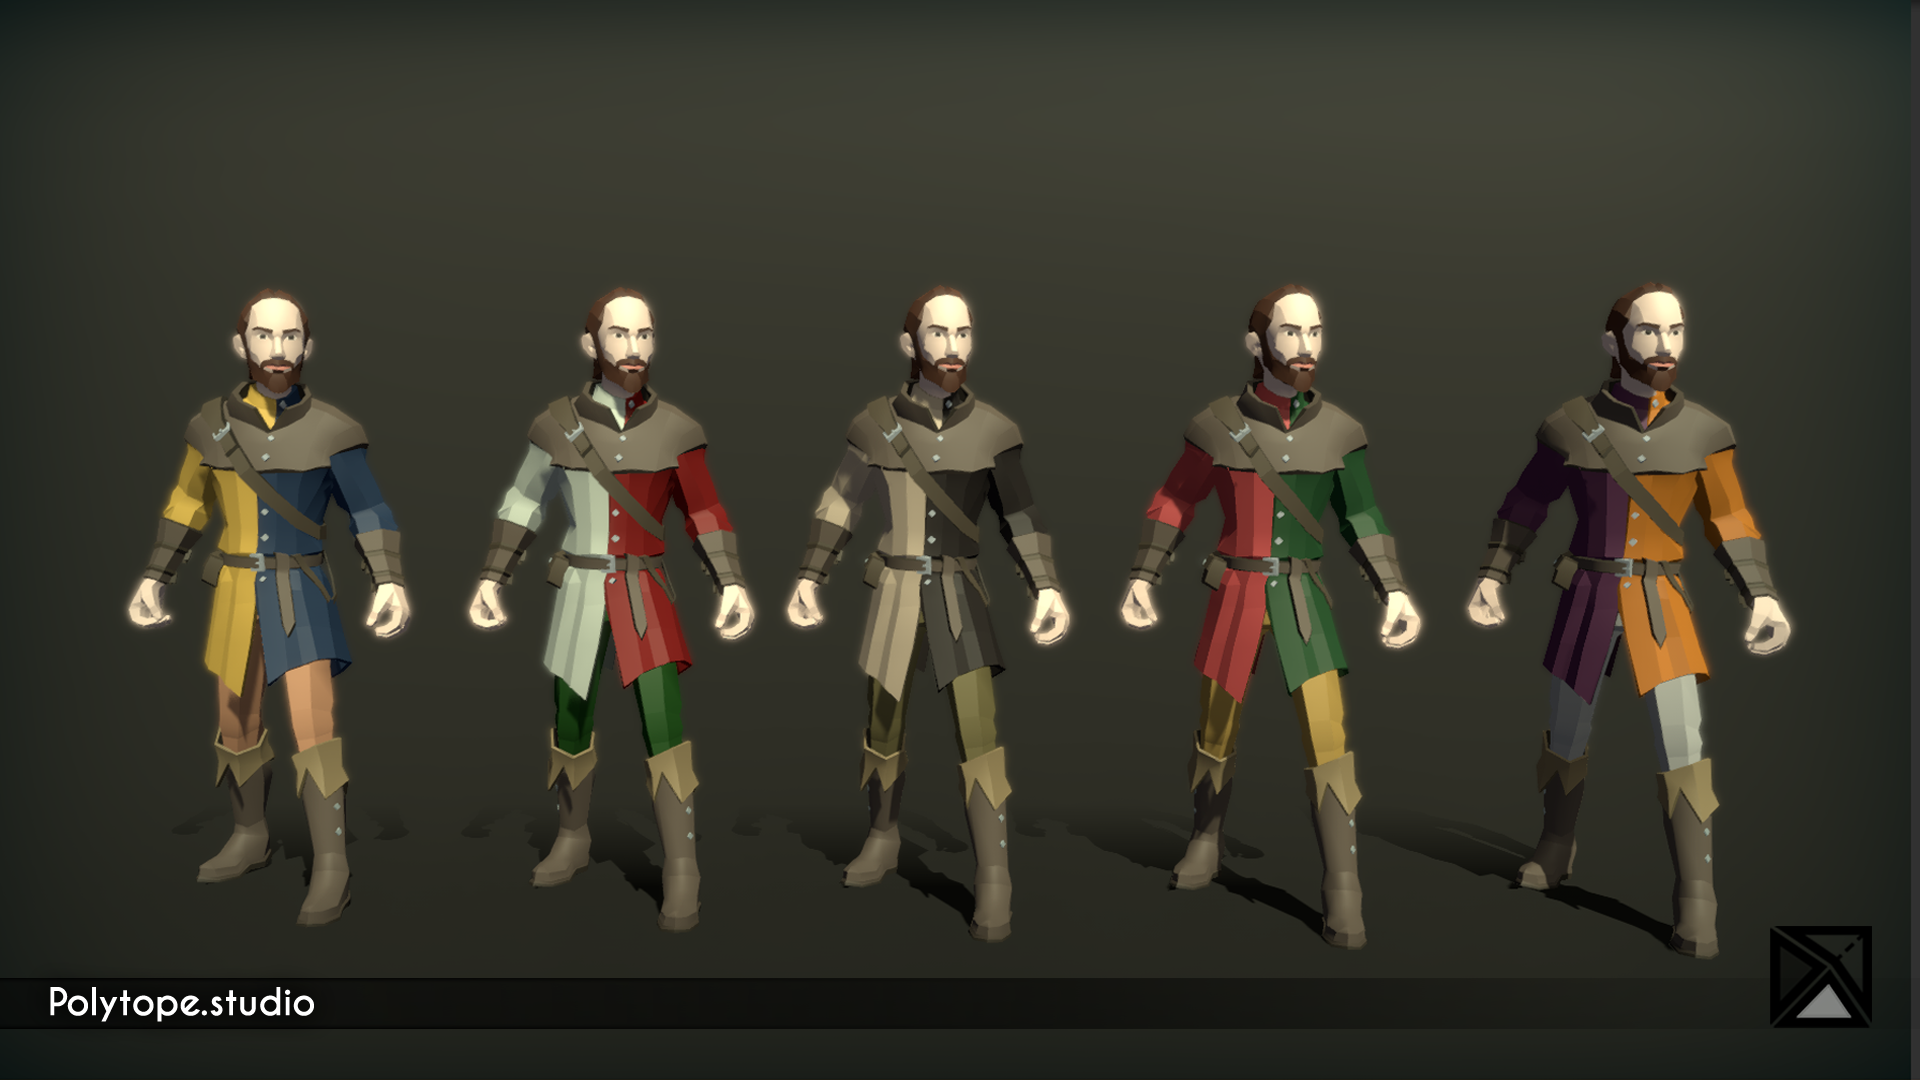 PT_Medieval_Lowpoly_Weapons_Soldier.png